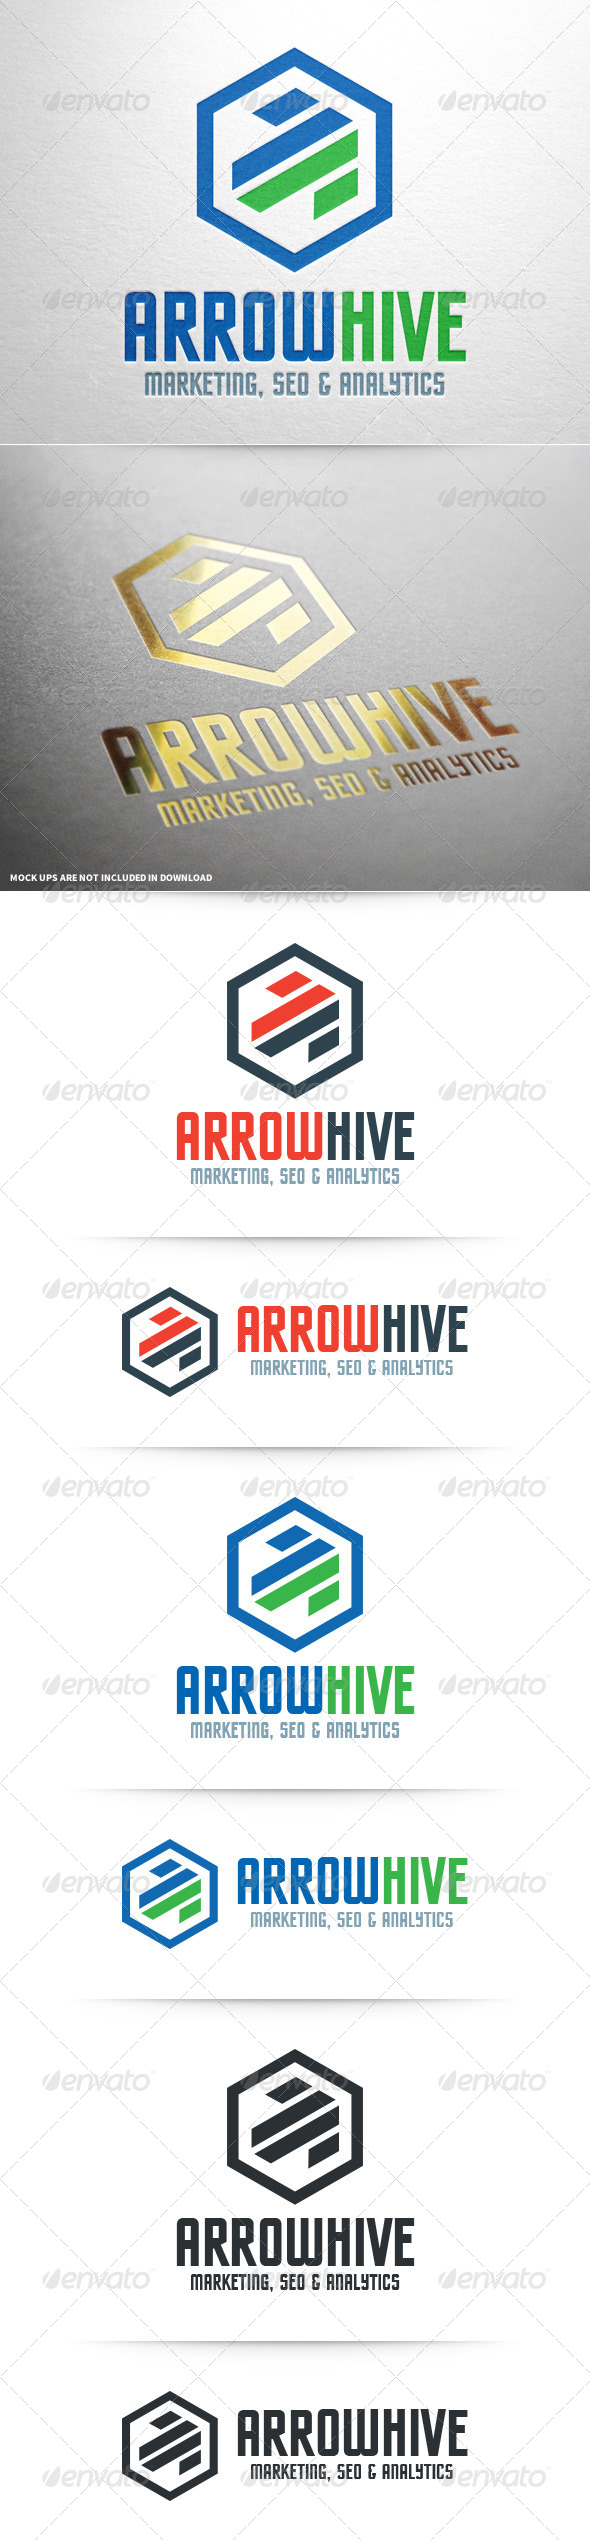 GraphicRiver Arrow Hive Logo Template 8520814